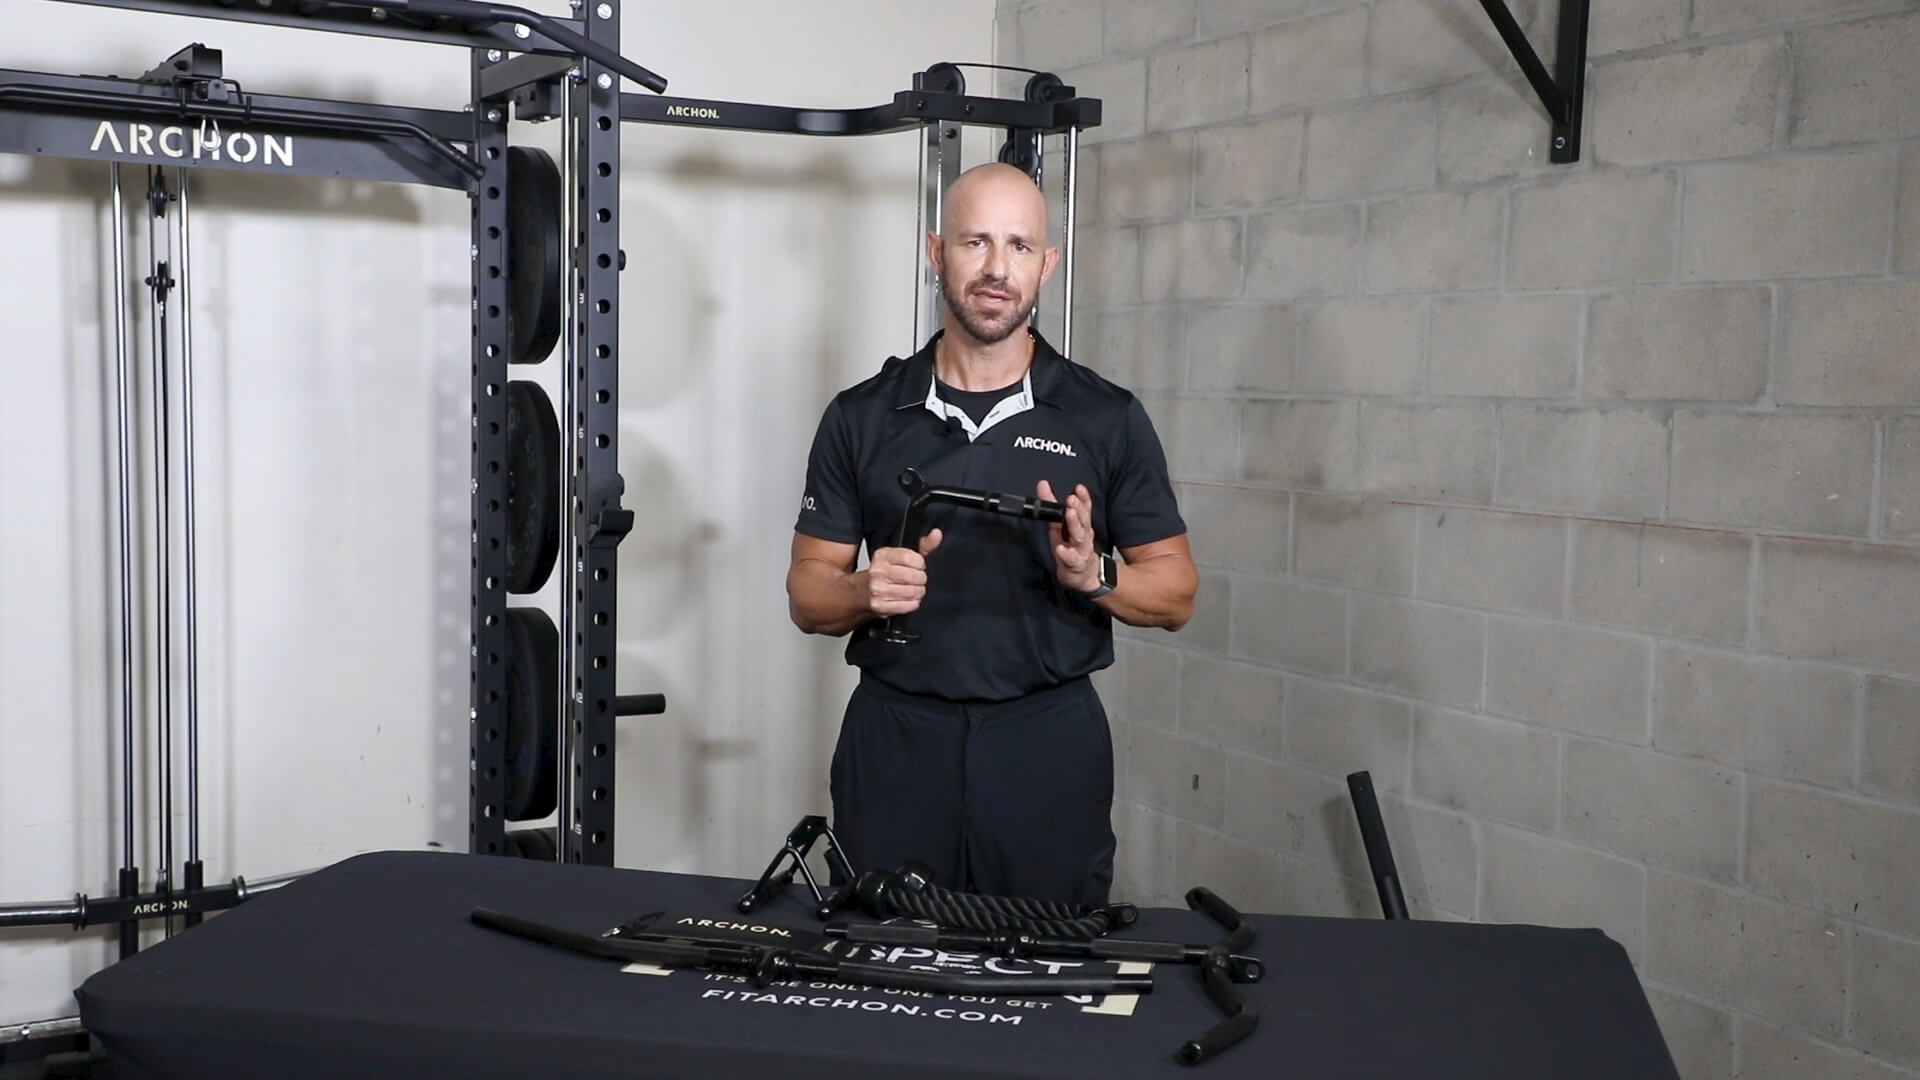 ARCHON Cable Accessory Kit - rule your body rule your mind - home and commercial fitness equipment